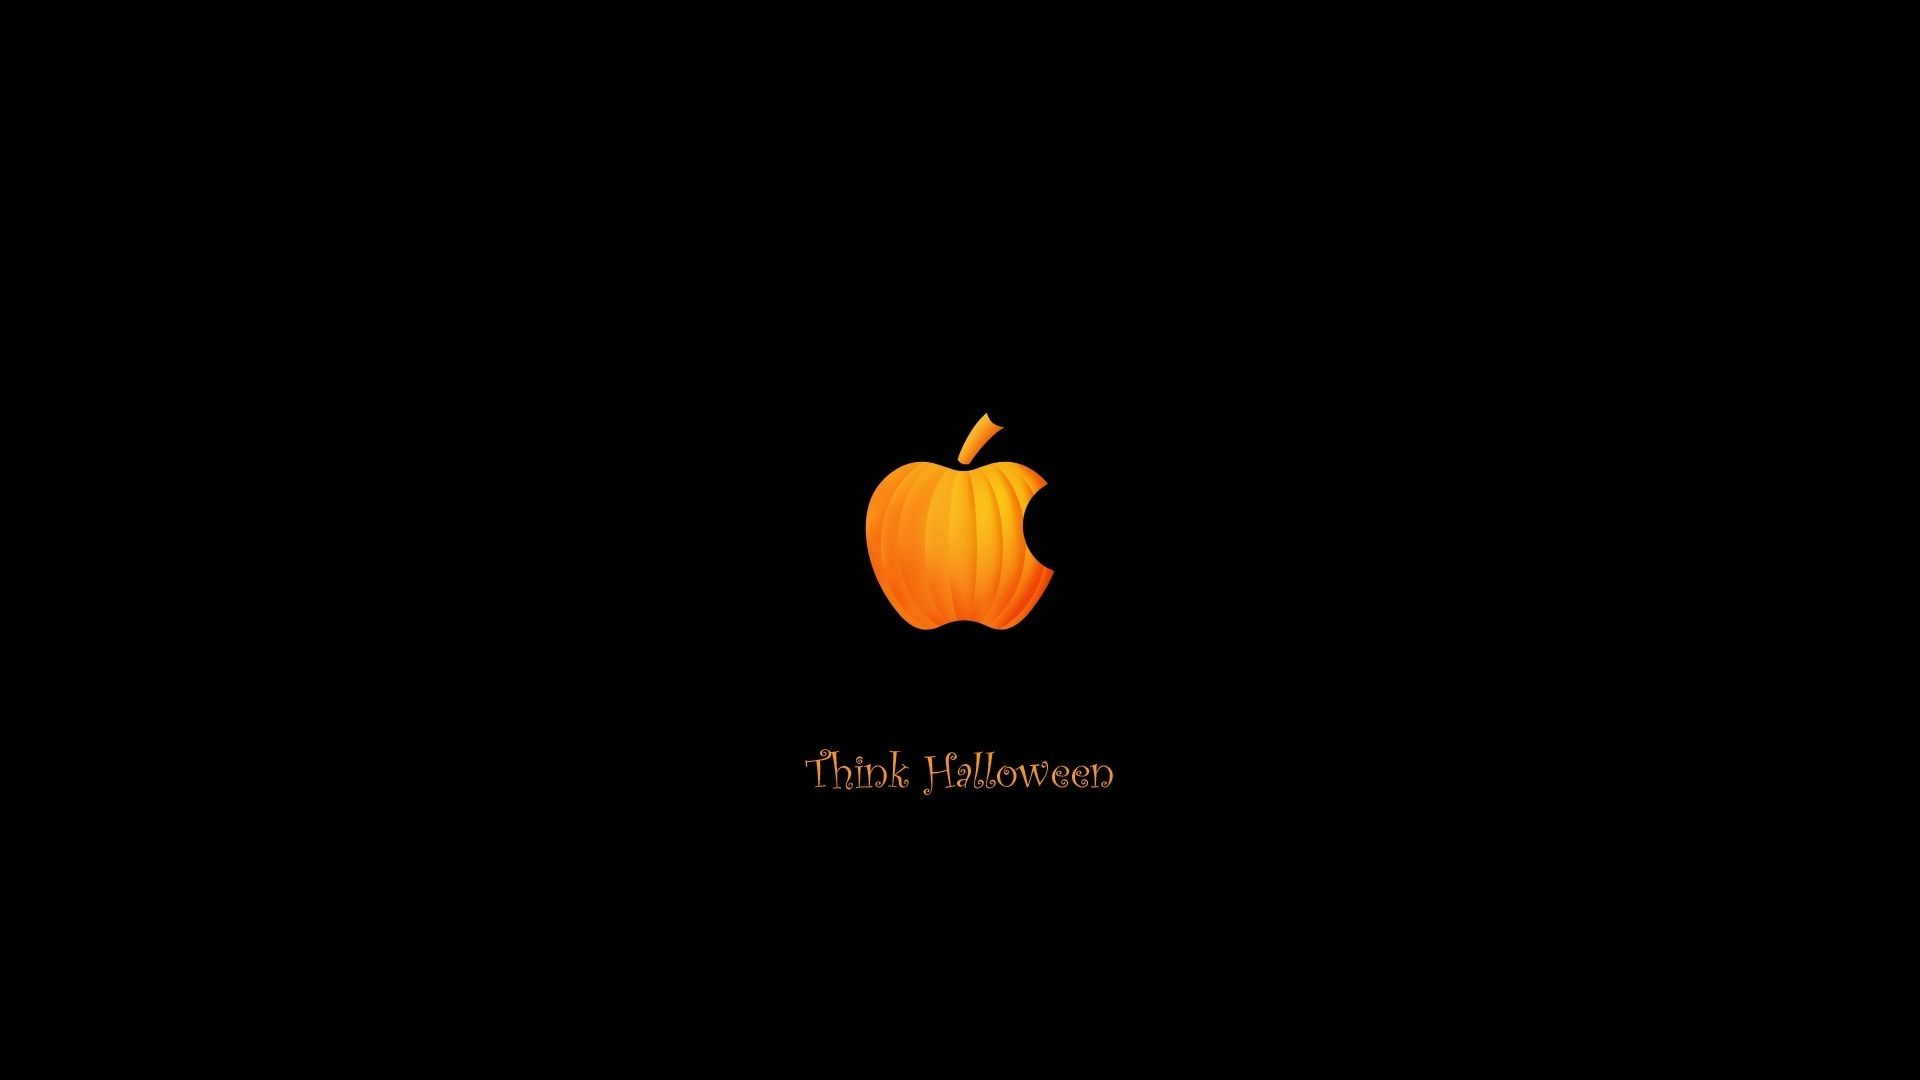 View Source Image Macbook Desktop Backgrounds Halloween Wallpaper Apple Logo Wallpaper